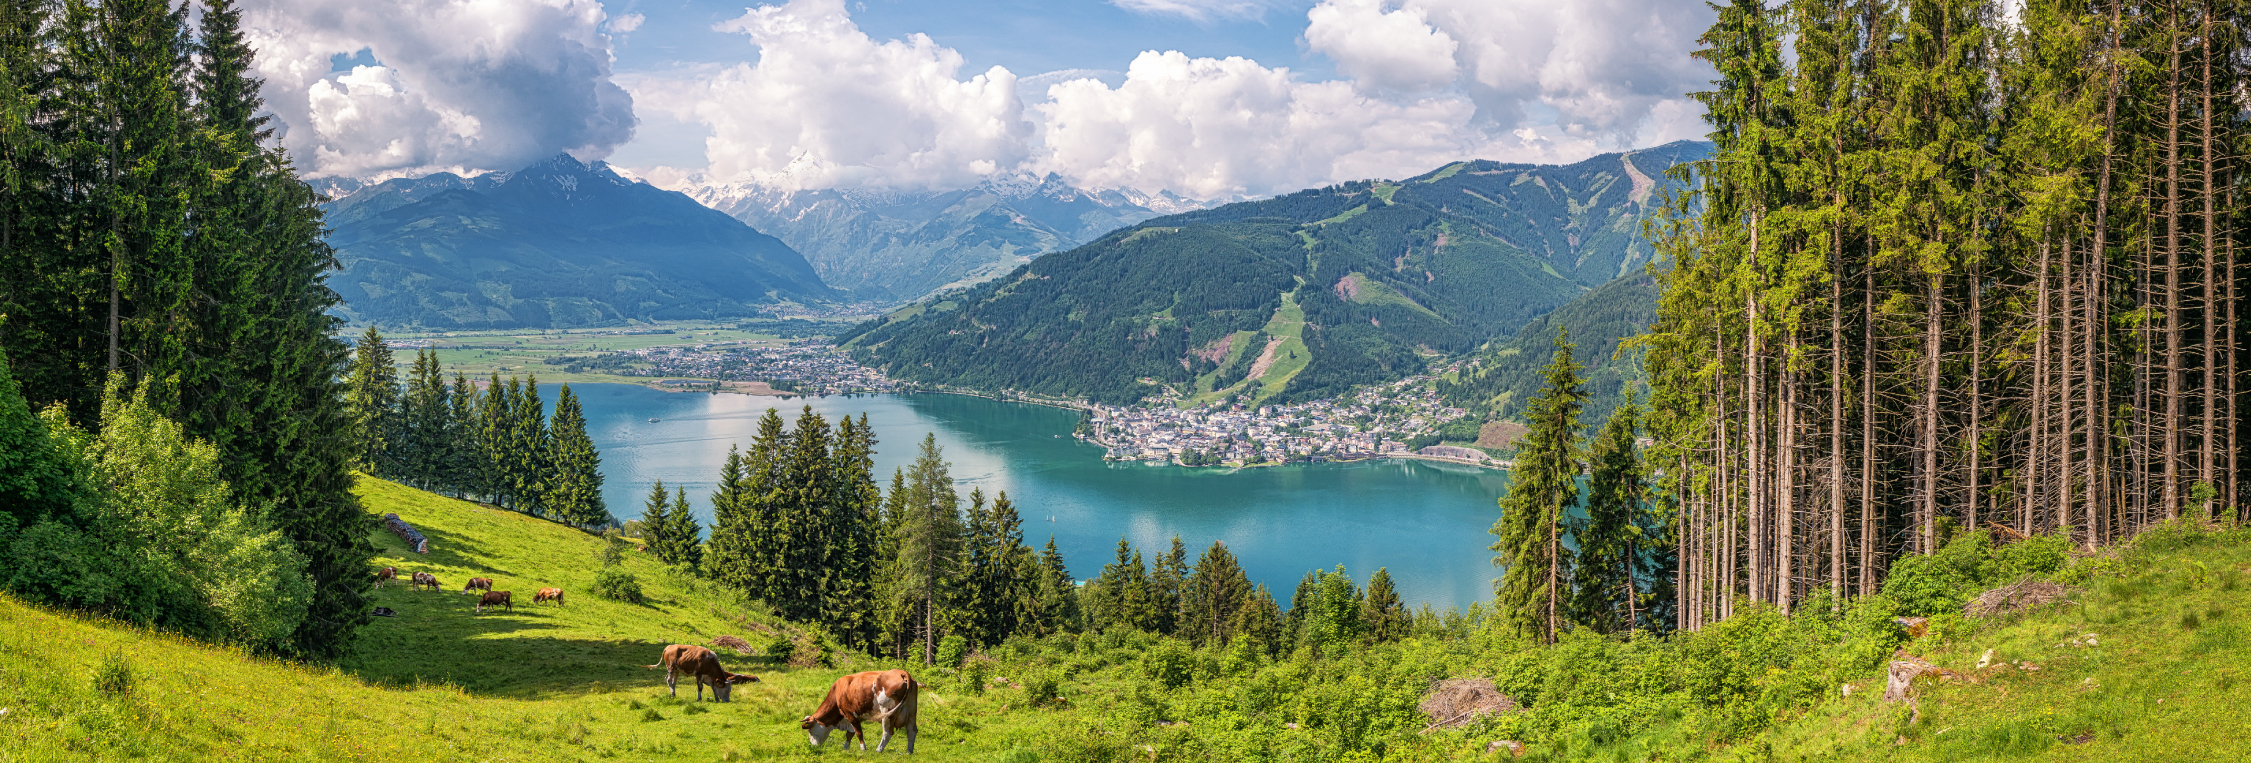 summer-lake-switzerland-travel-view